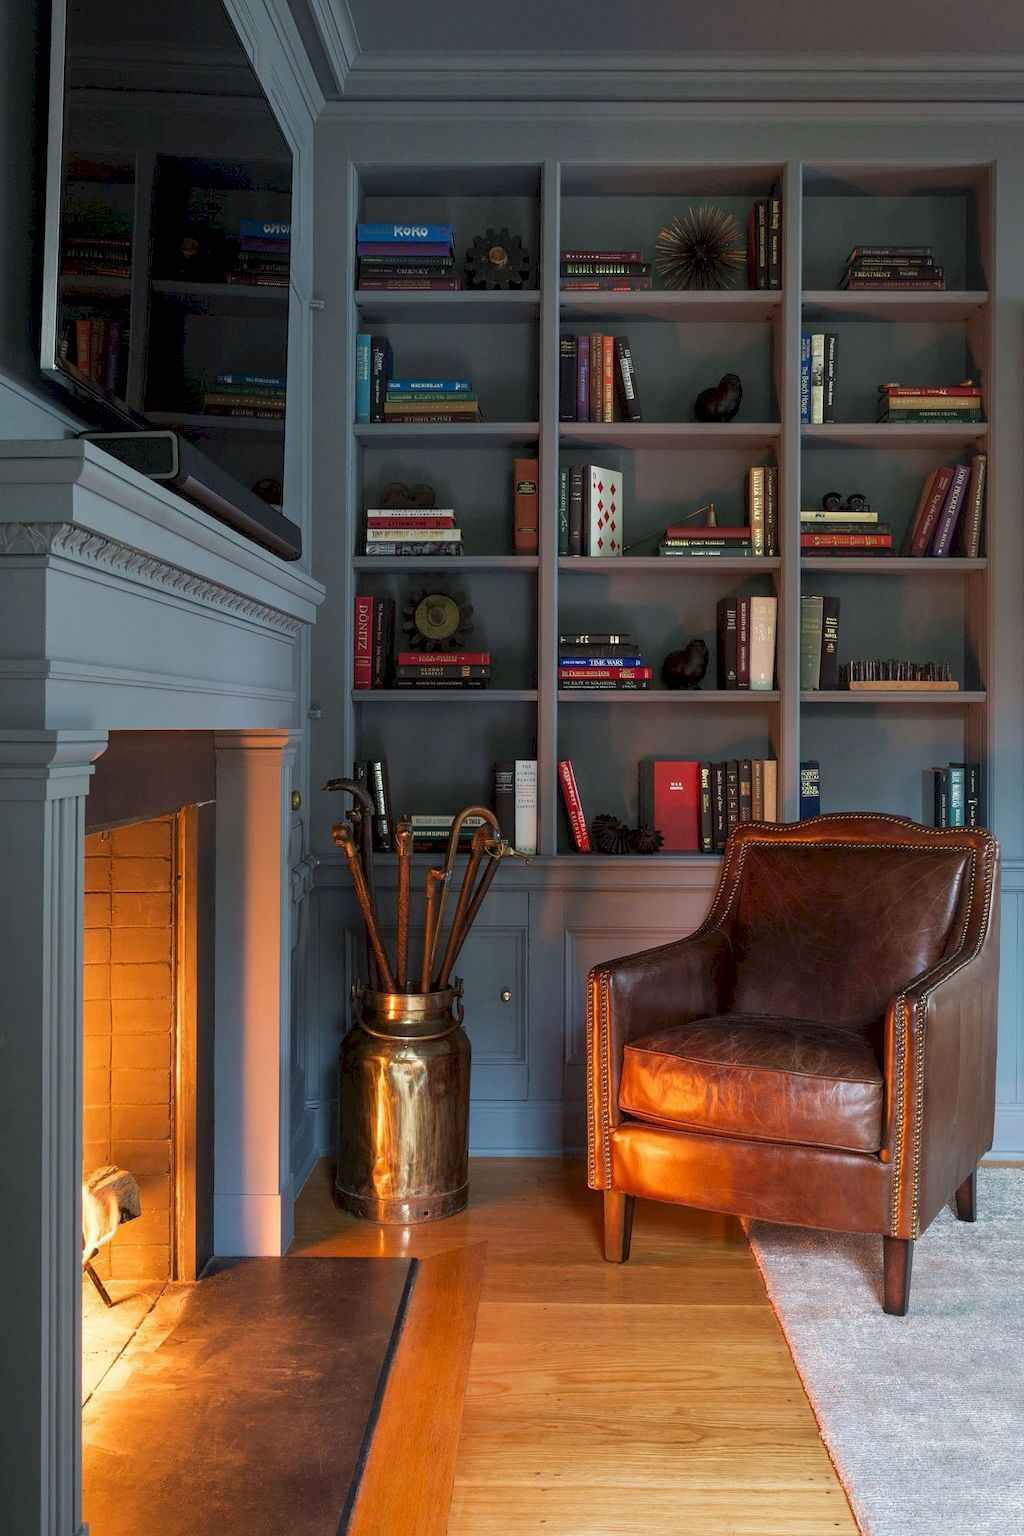 Living Room Library Design Ideas: 01 Inspiring Fireplace Decor Ideas For Your Living Room In